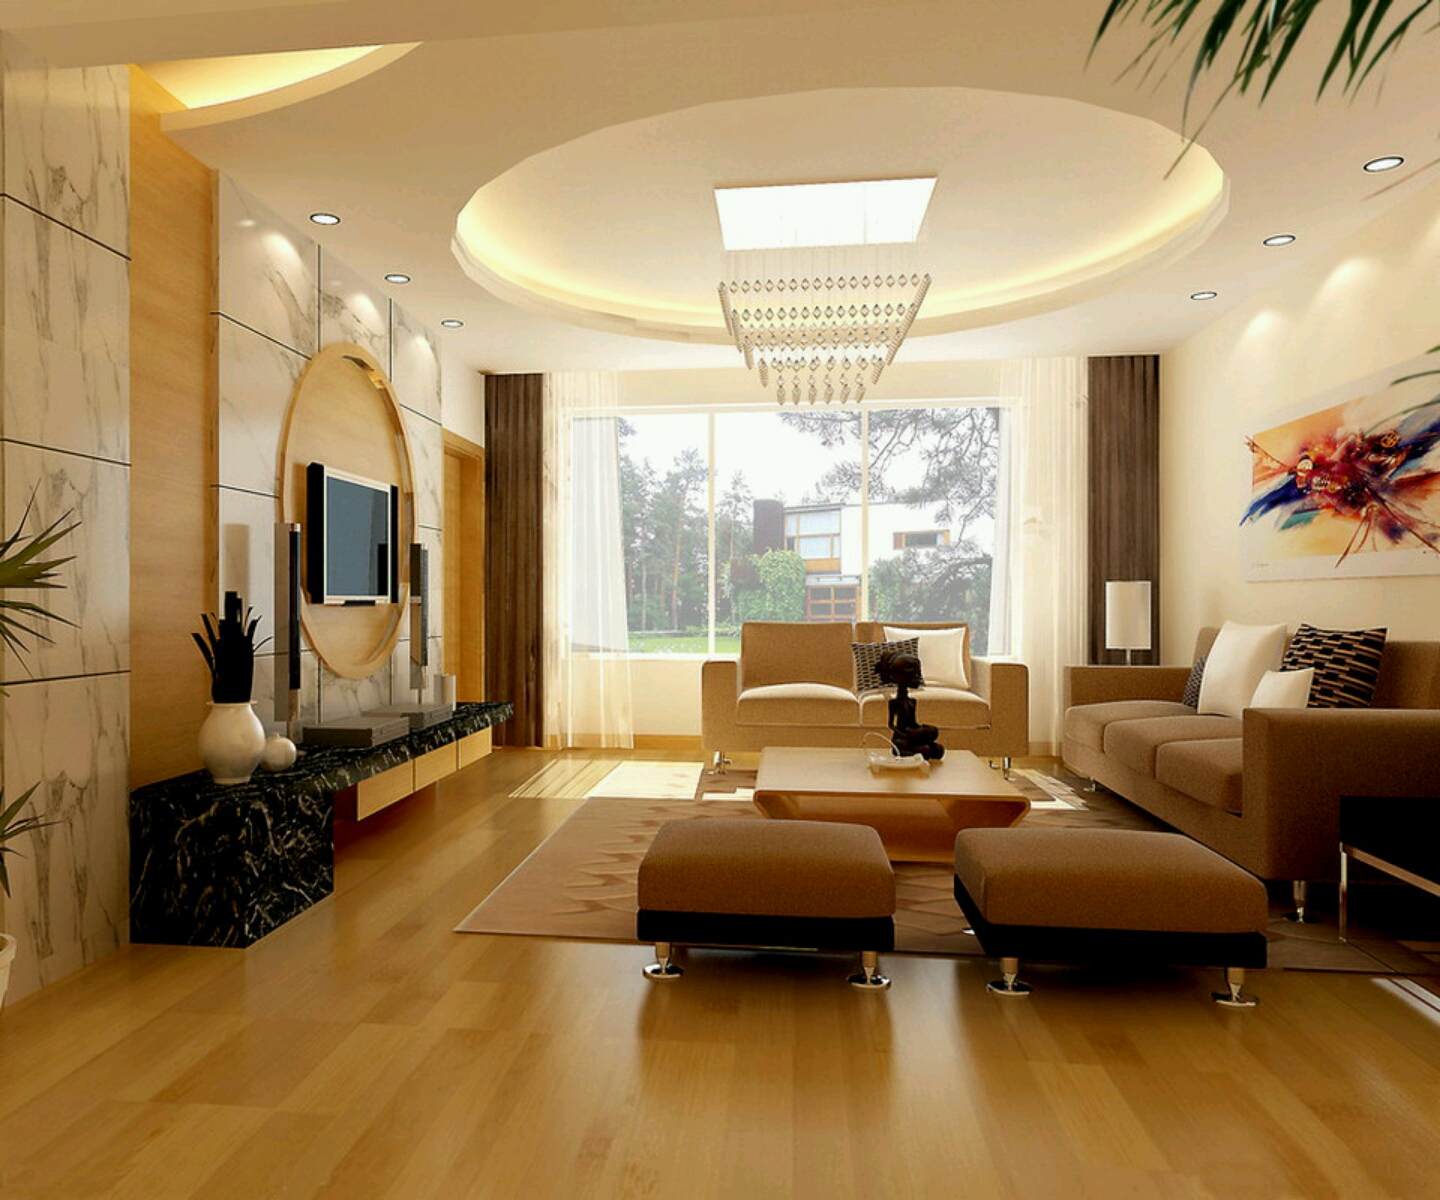 Amazing Ceiling Decorations For Your Modern Home: Modern Interior Decoration Living Rooms Ceiling Designs